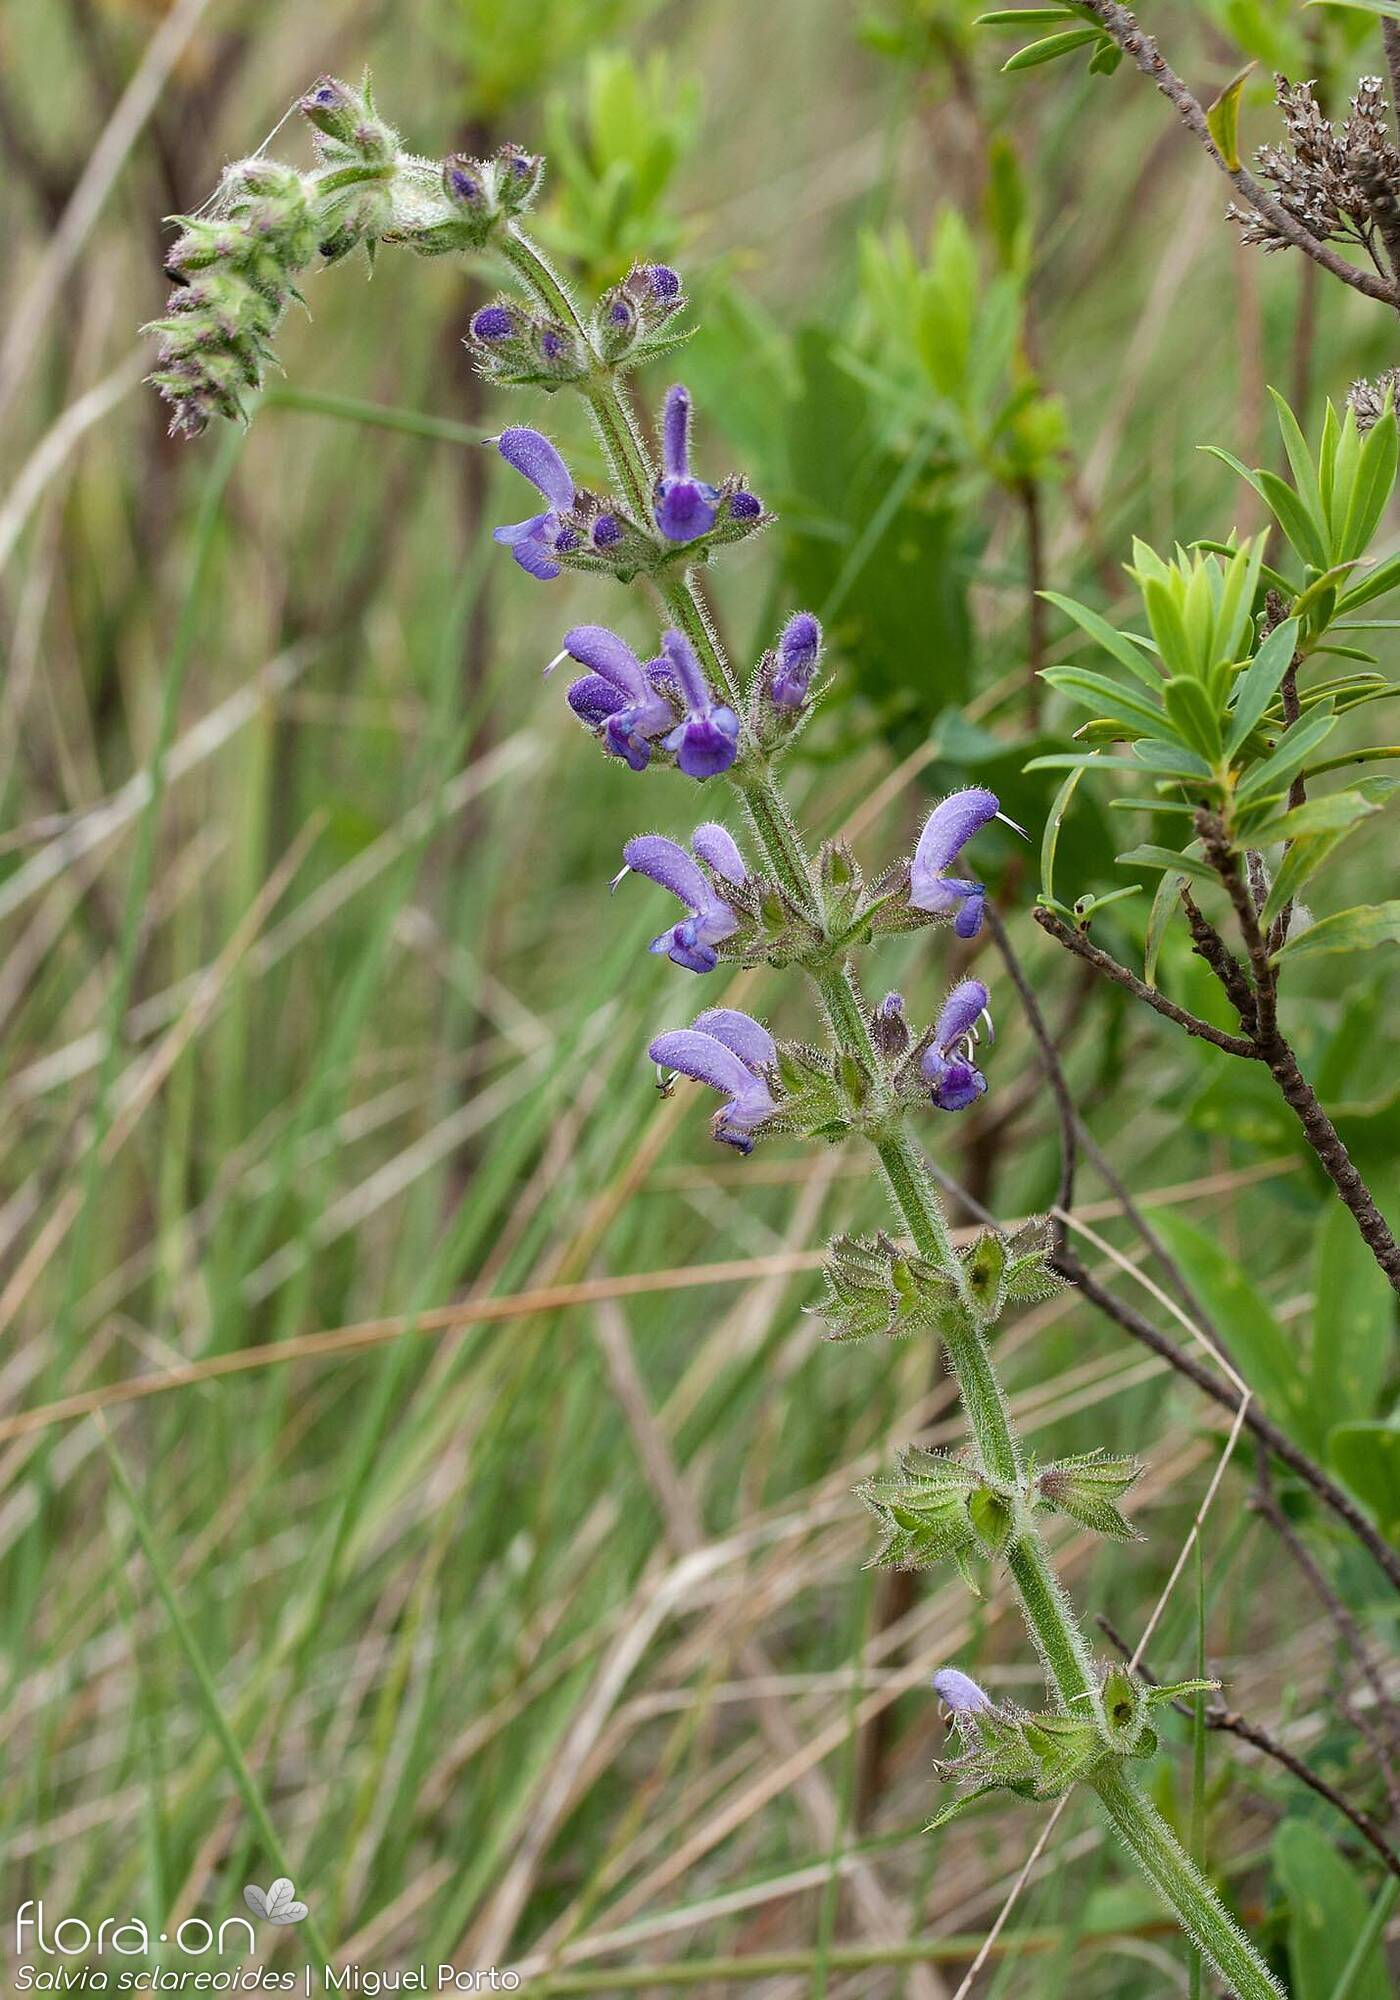 Salvia sclareoides - Flor (geral) | Miguel Porto; CC BY-NC 4.0